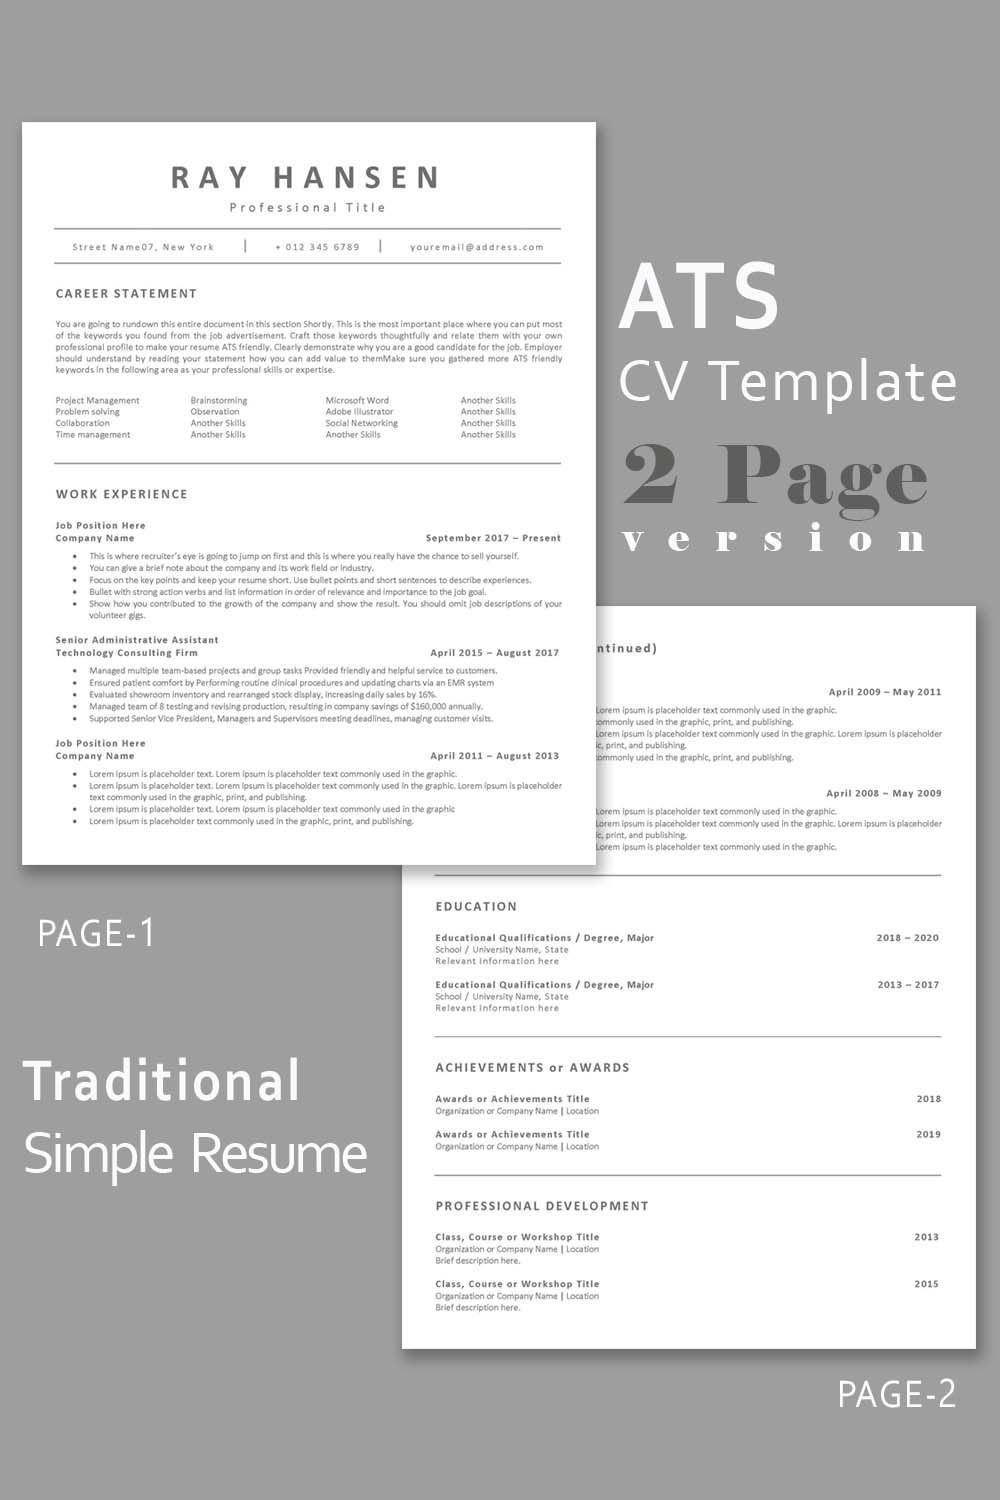 ats compatible resume template applicant tracking system etsy in functional design Resume Applicant Tracking System Friendly Resume